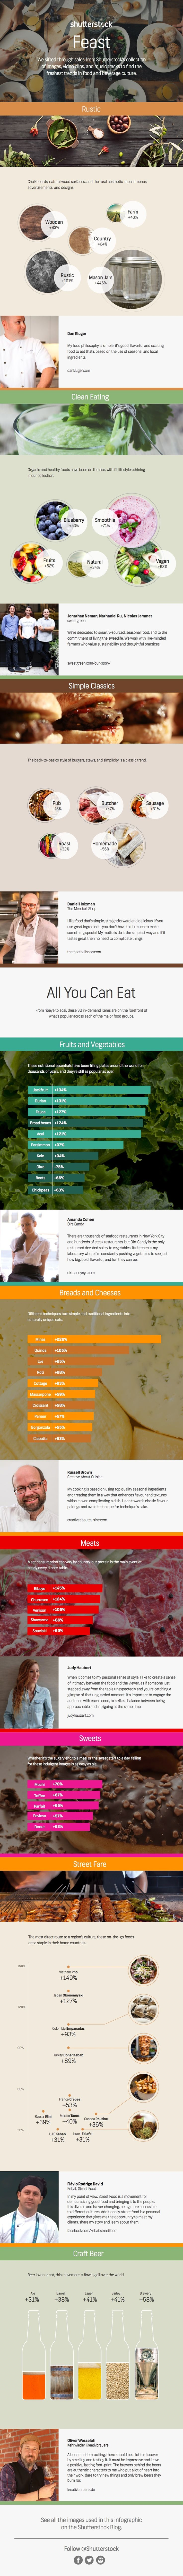 Infographic: Shutterstock's 2015 Food and Beverage Trends